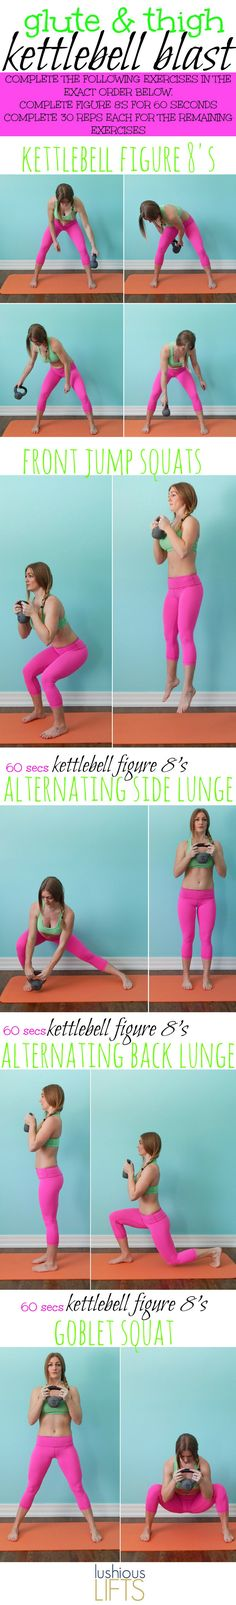 Glute and Thigh Kettlebell Blast Workout; Kettlebell Figure 8's with lunges and squats are a great way to shape your legs!